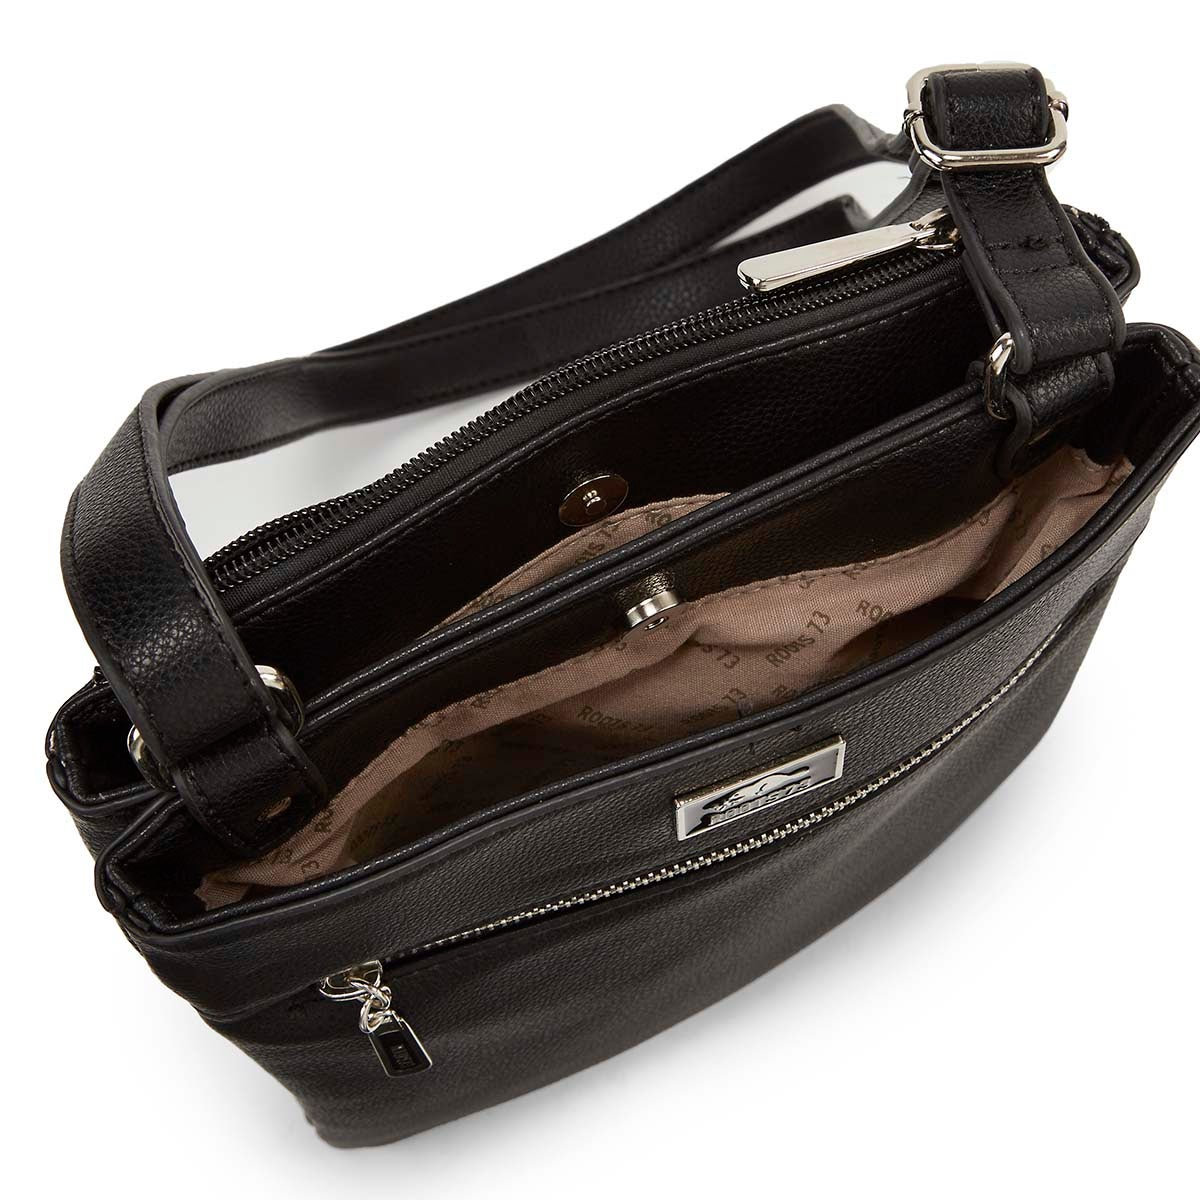 Lds blk N/S 3 compartment cross body bag